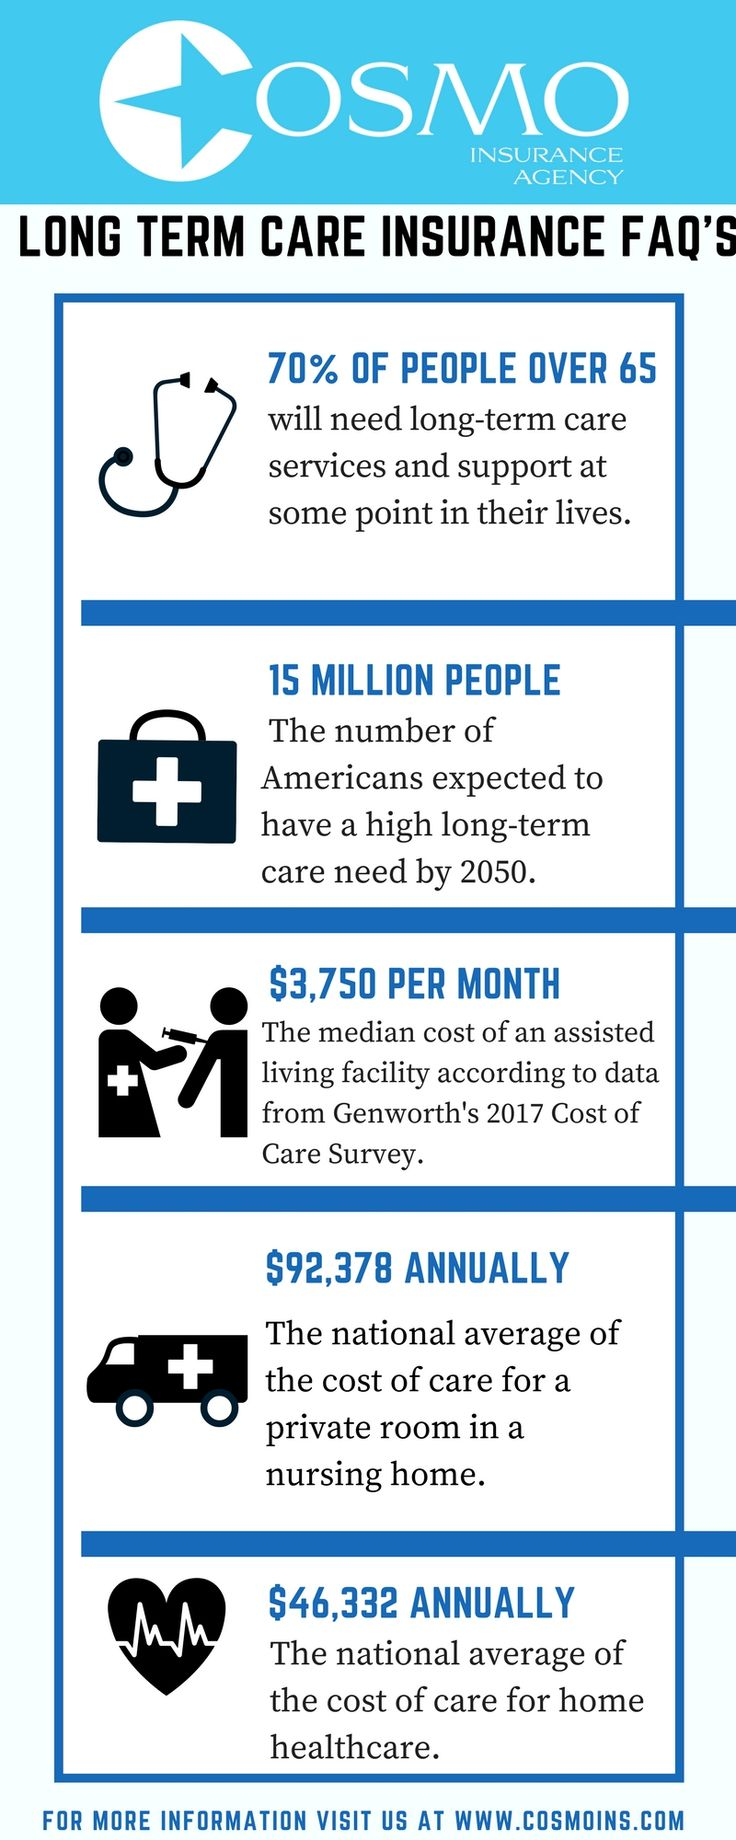 Pin by Cosmo Insurance Agency on Longterm Care Insurance